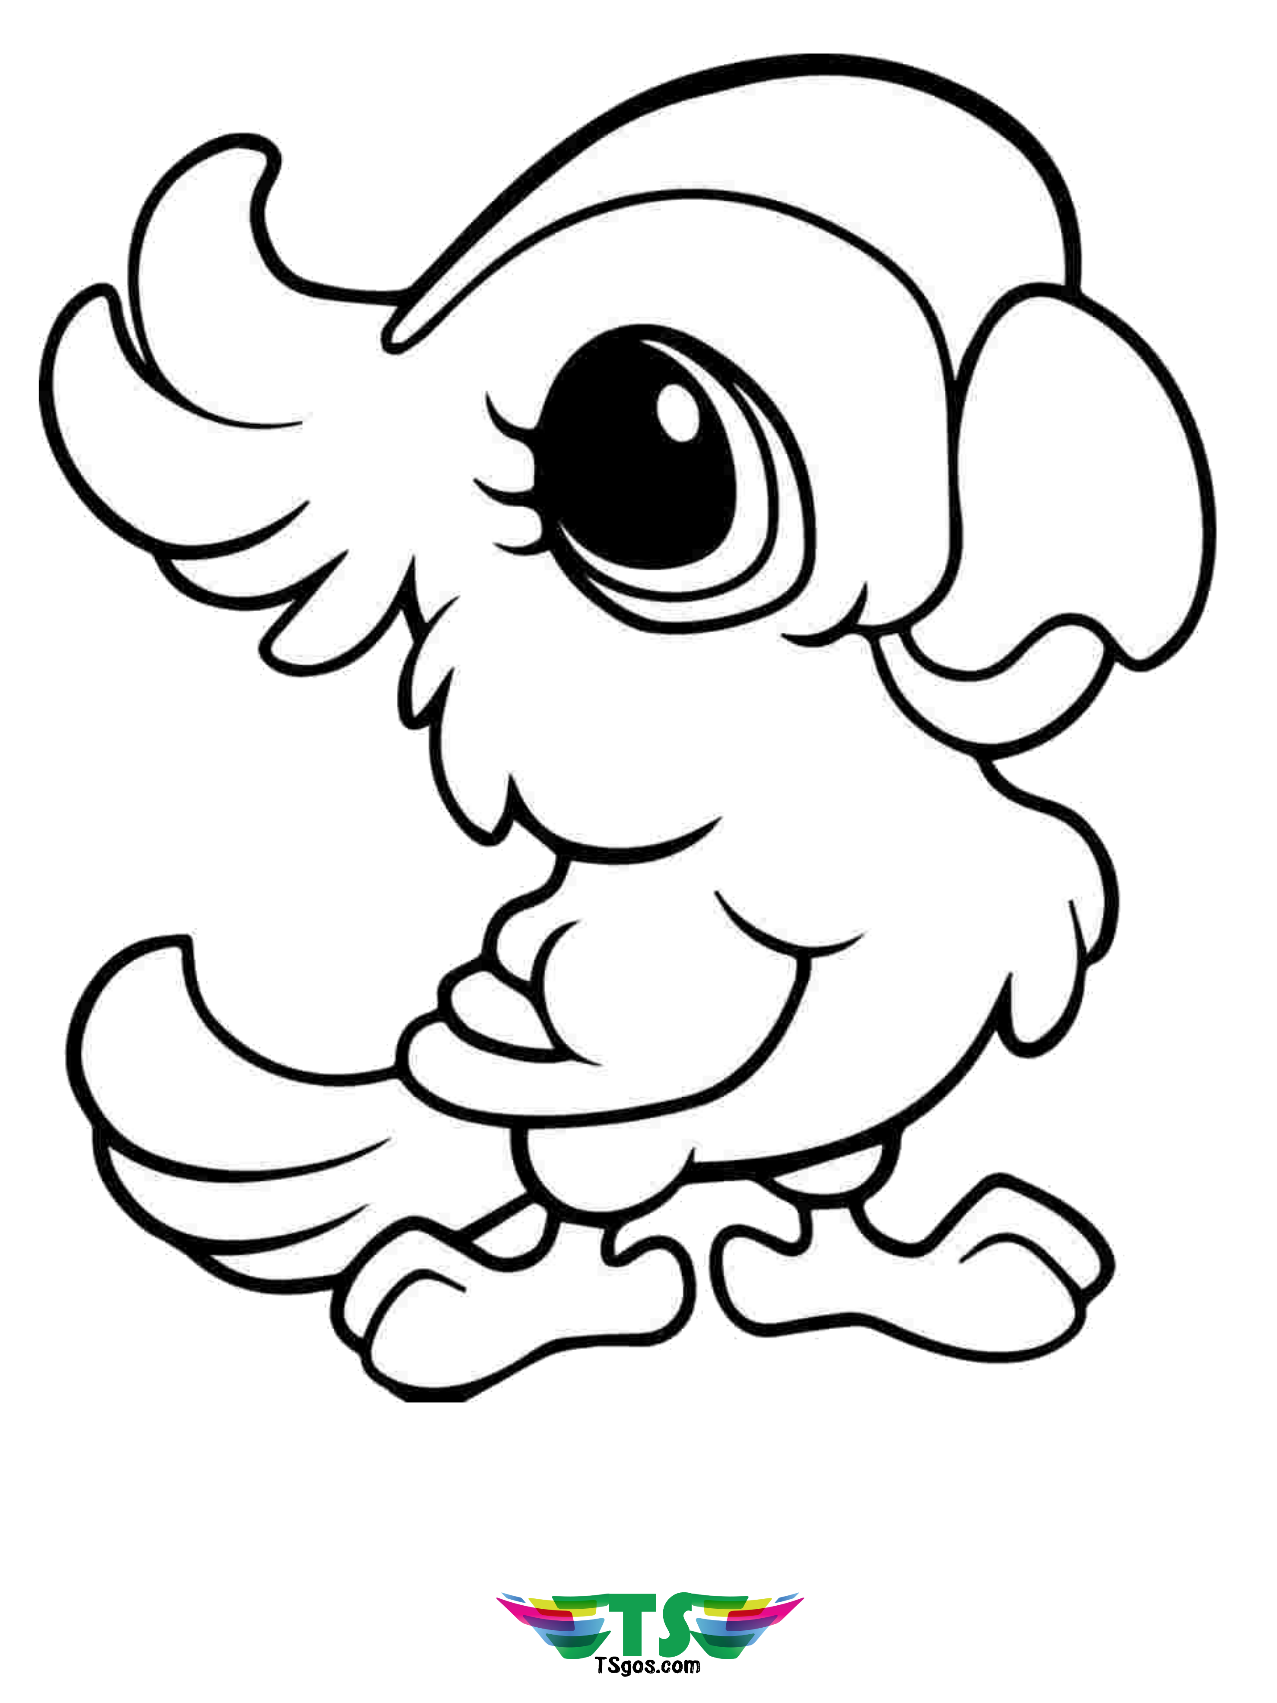 printable bird coloring pages free printable adult coloring pages birds get coloring pages coloring printable pages bird